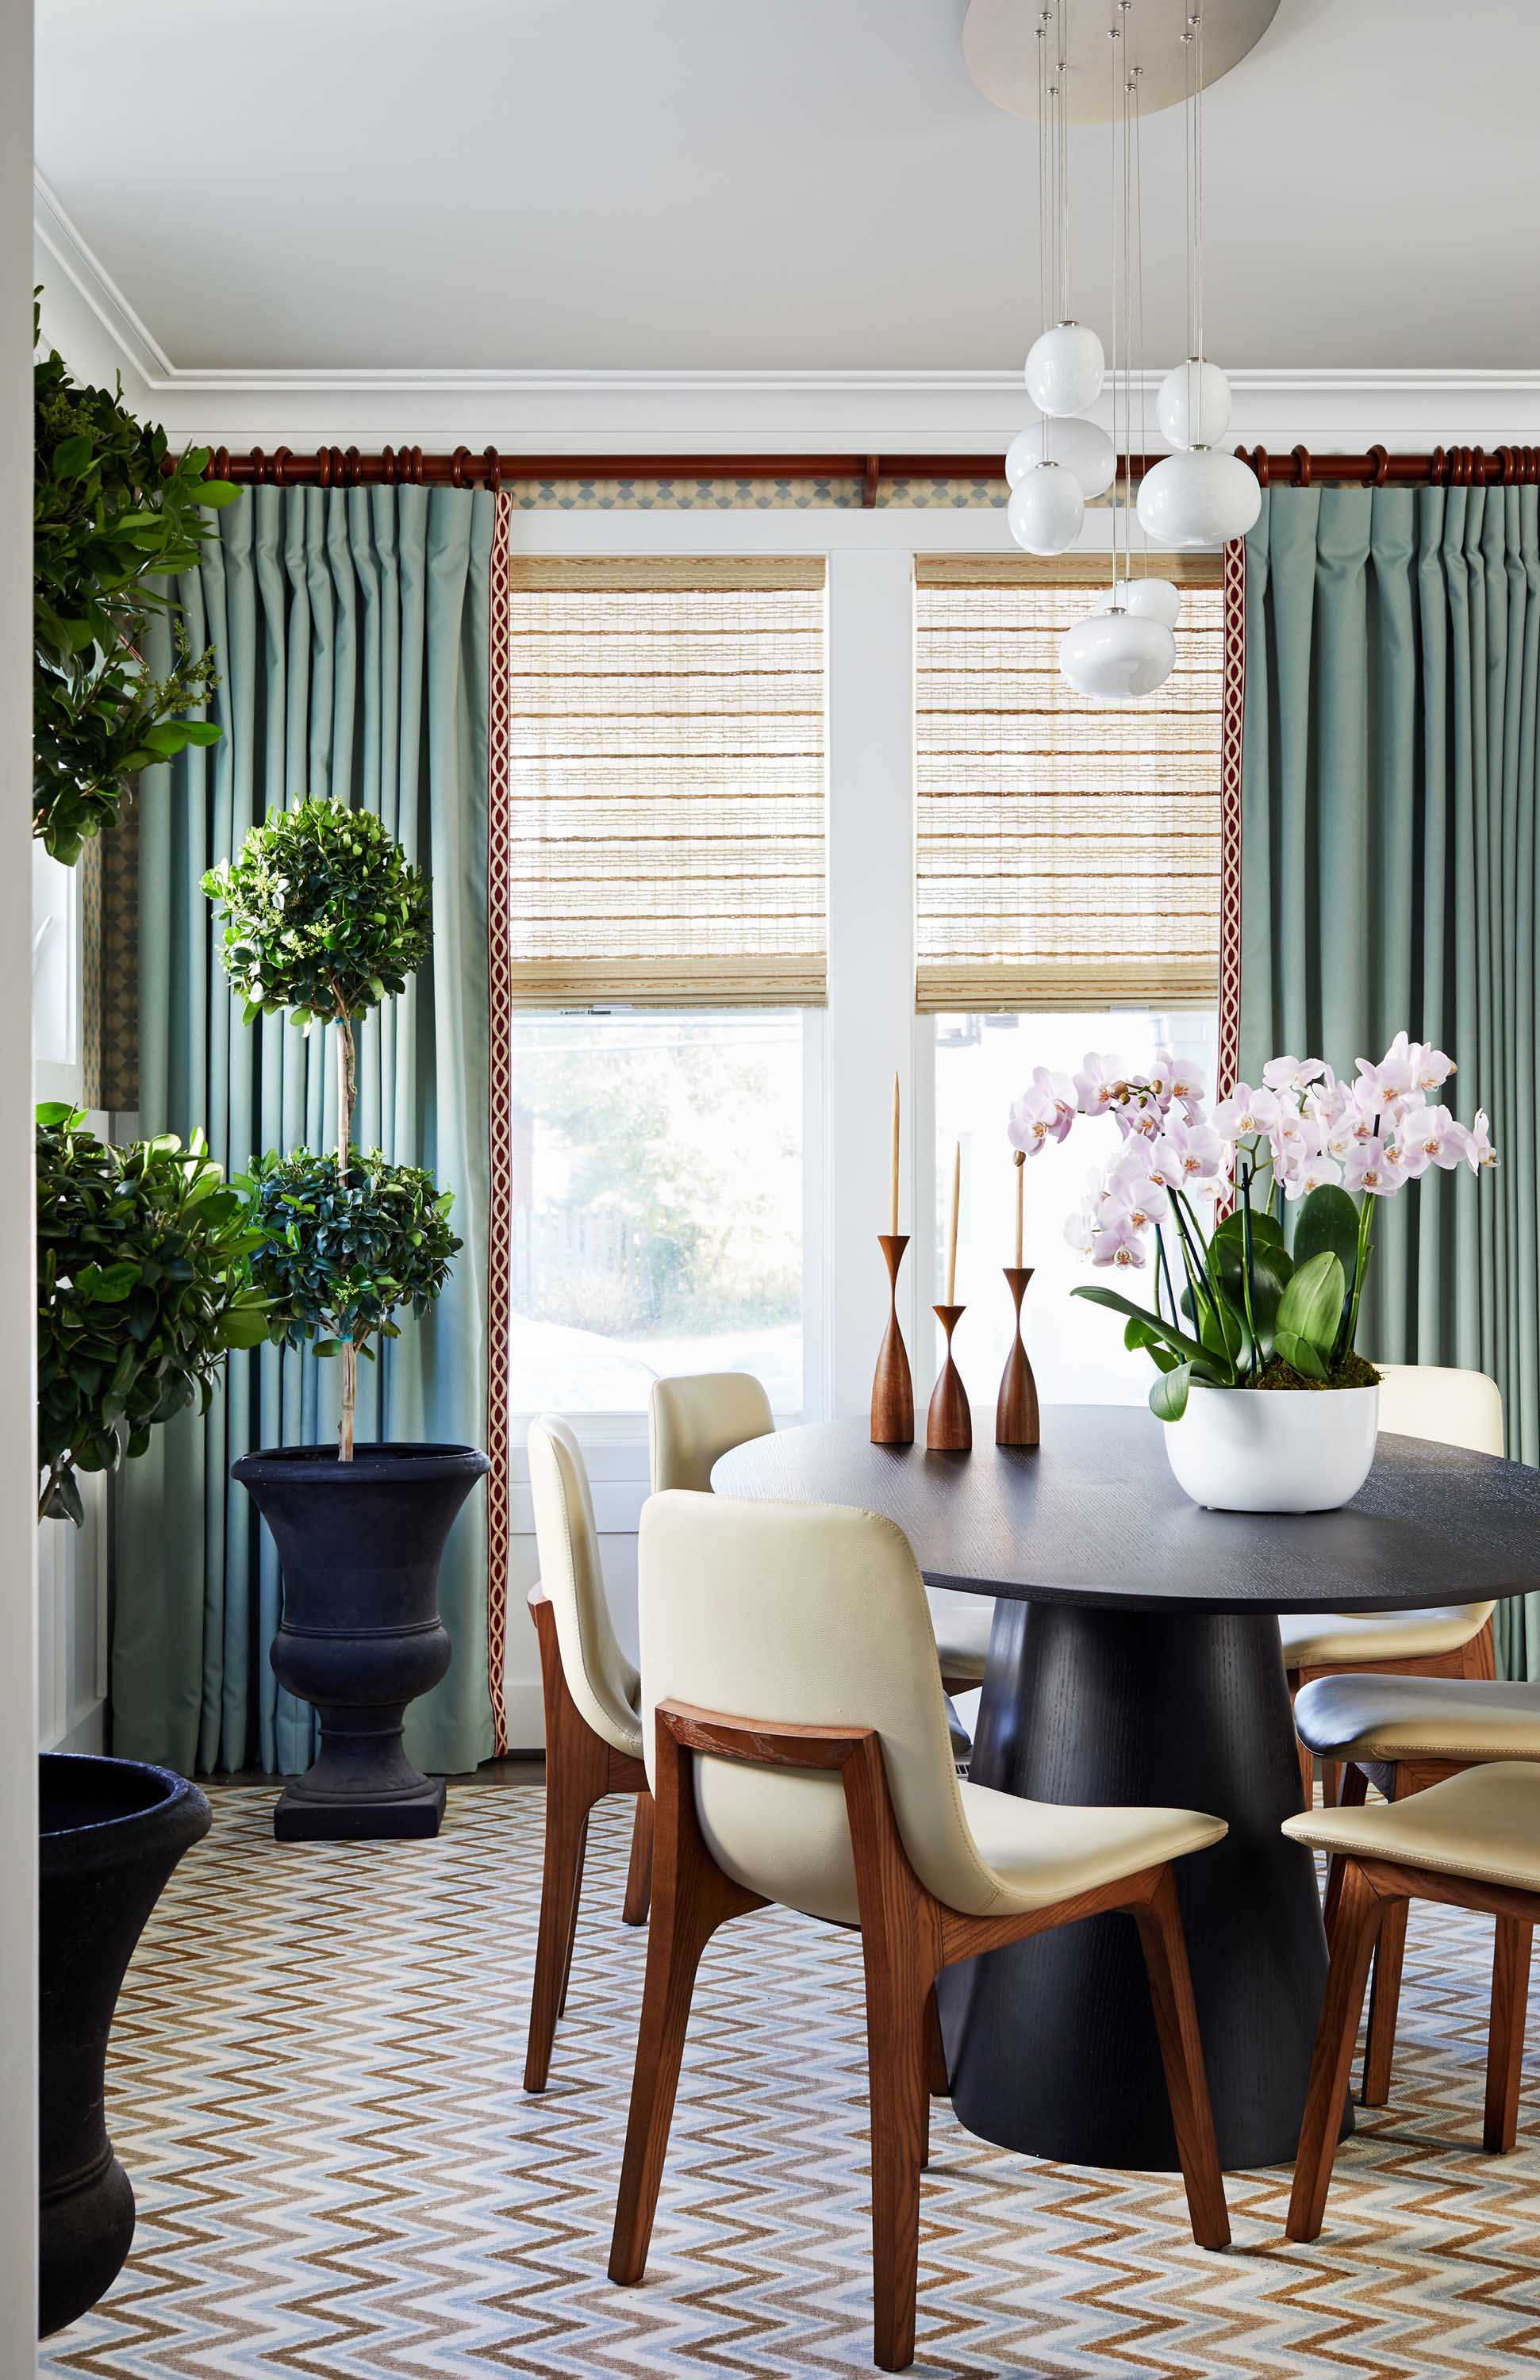 Dining room best of Boston Cambridge DC top-designers Dane Austin Design